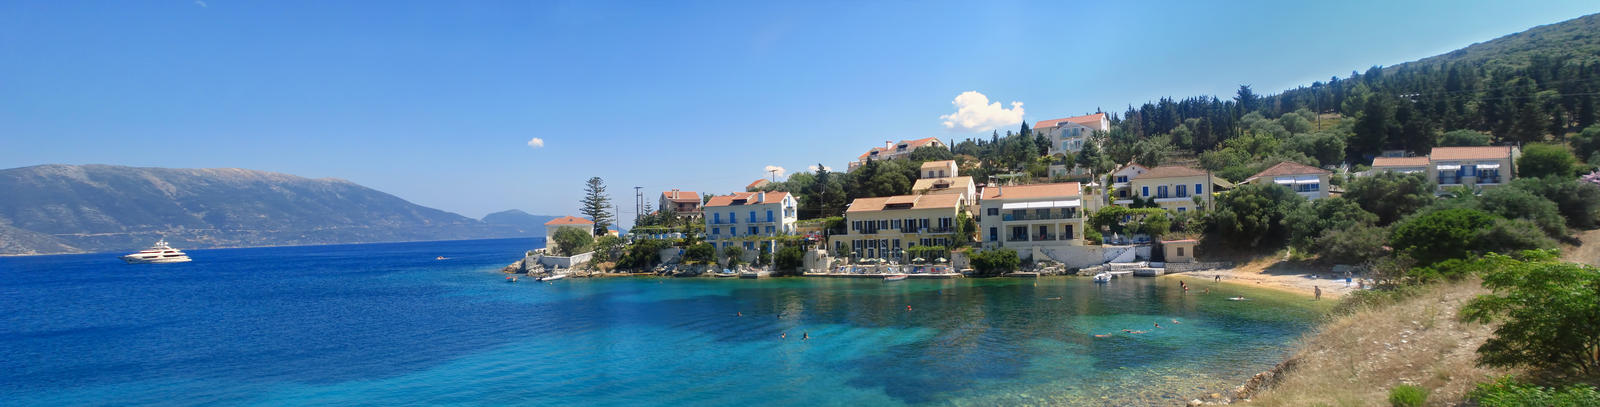 Fiskardo,Kefalonia,Greece by GiannisParaschou on DeviantArt